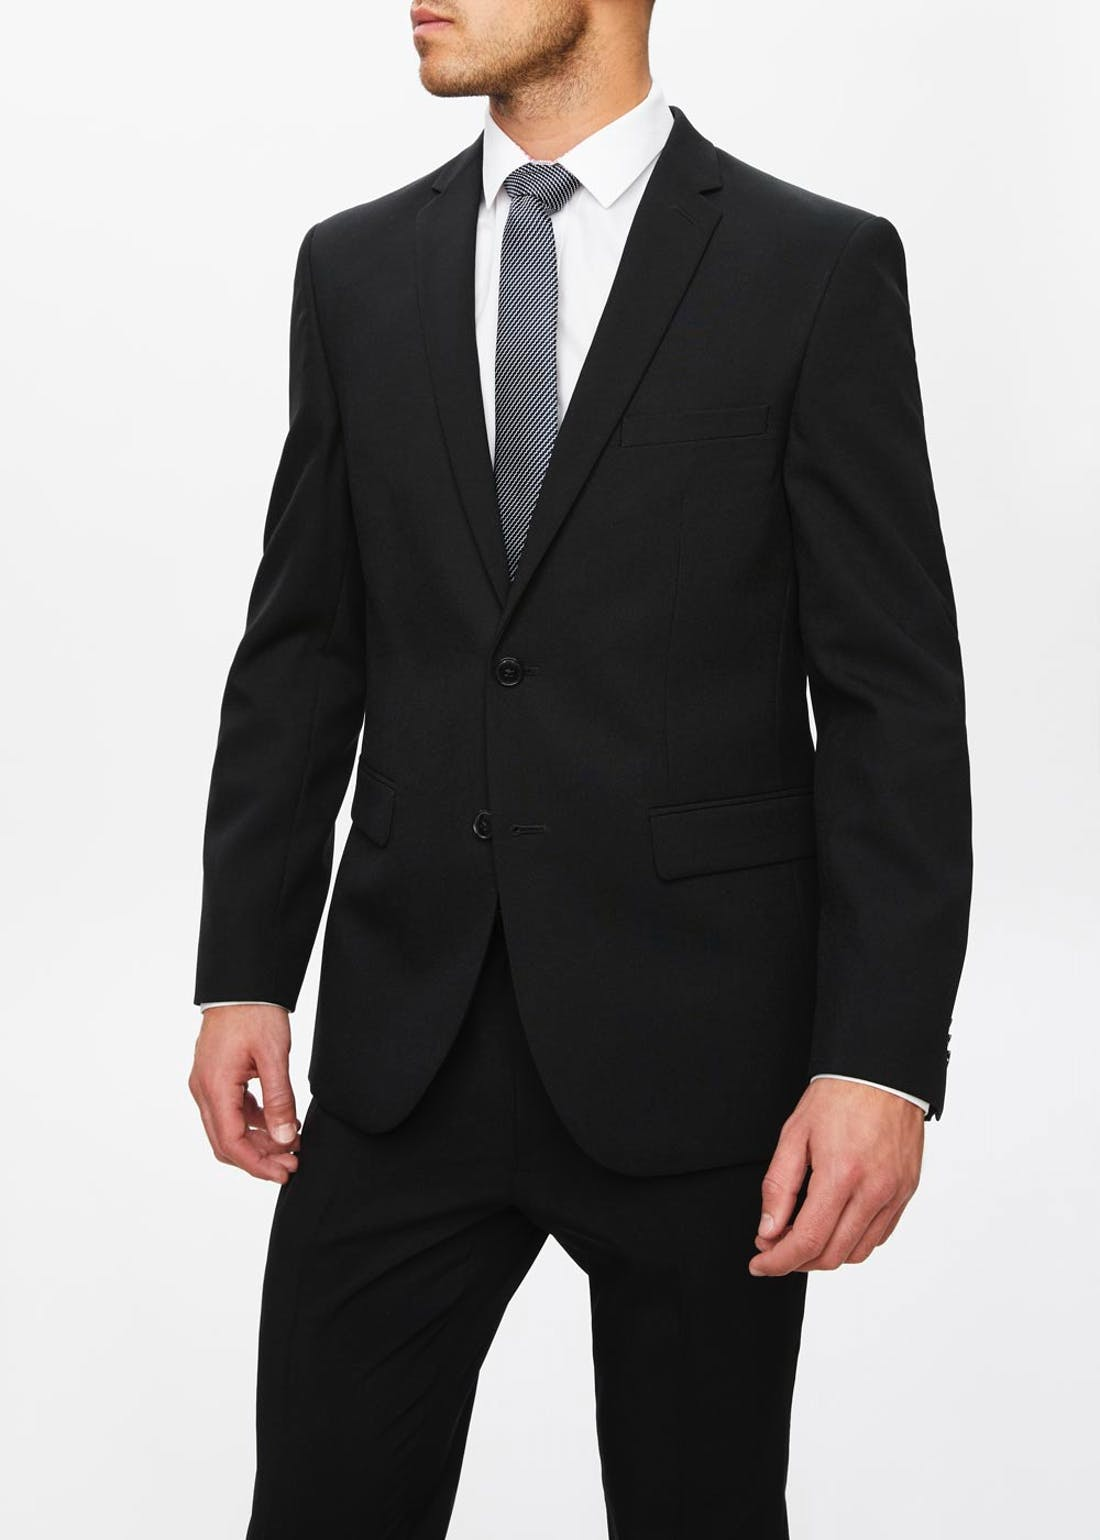 Taylor & Wright Panama Tailored Fit Suit Jacket